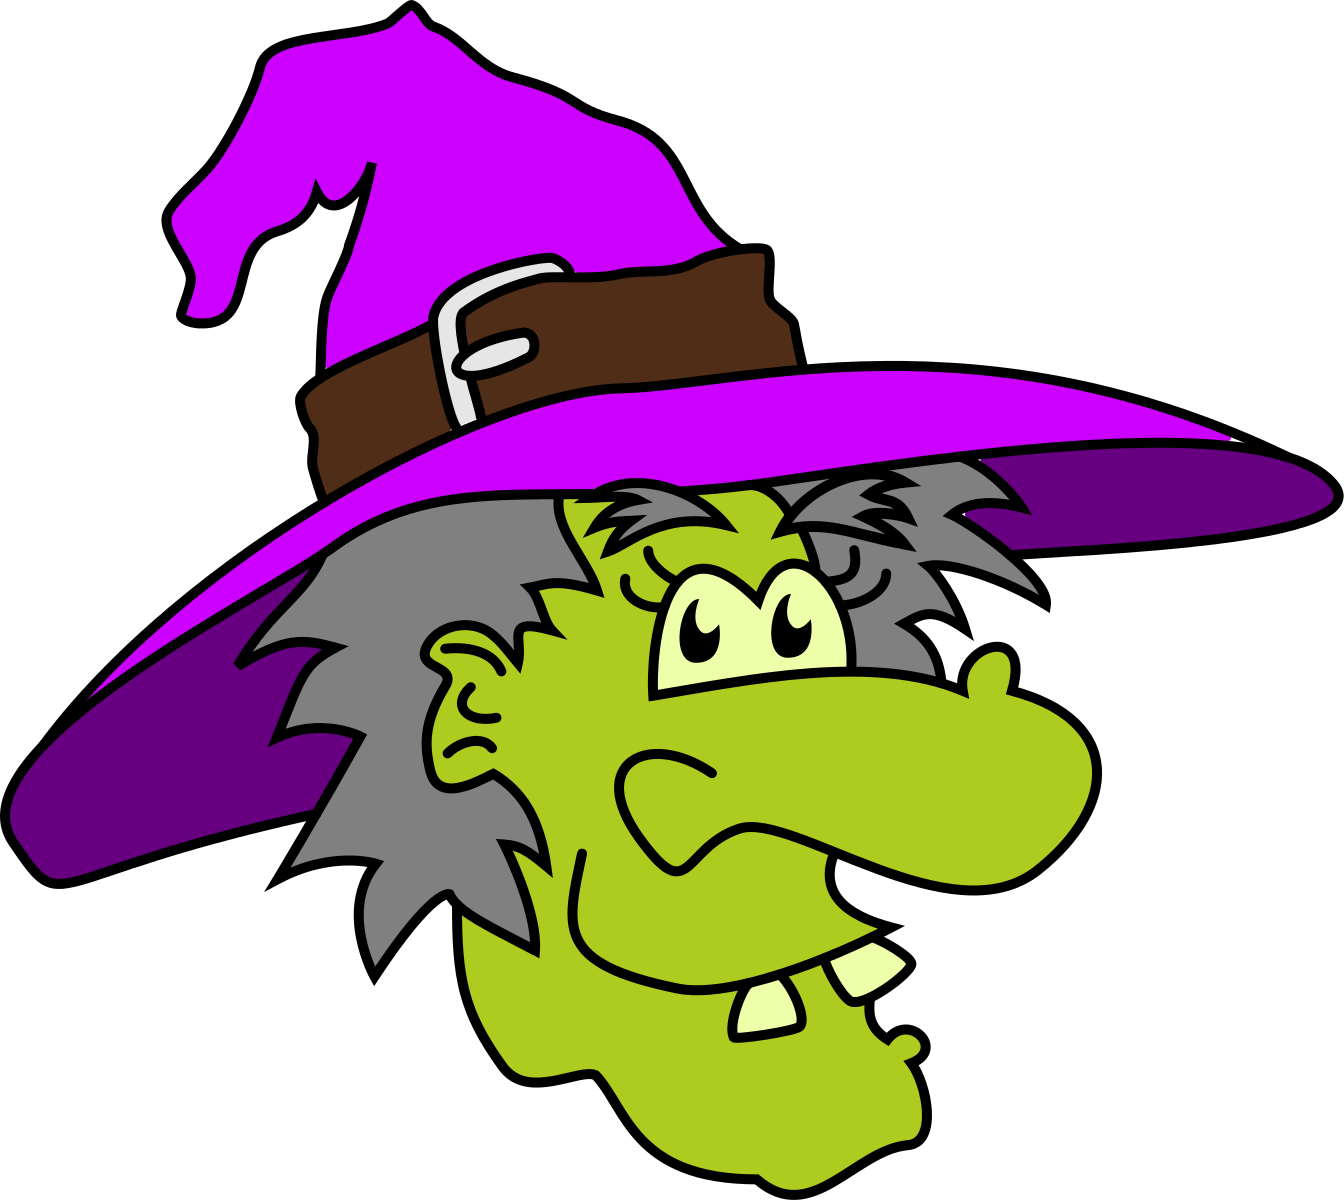 Witch clipart #4, Download drawings